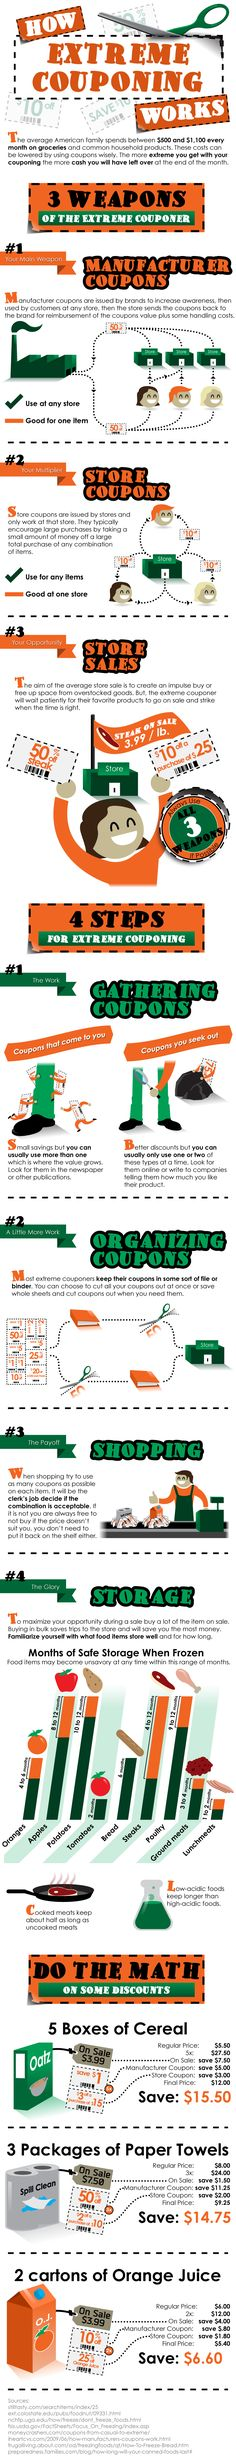 How Extreme Couponing Works [Infographic]